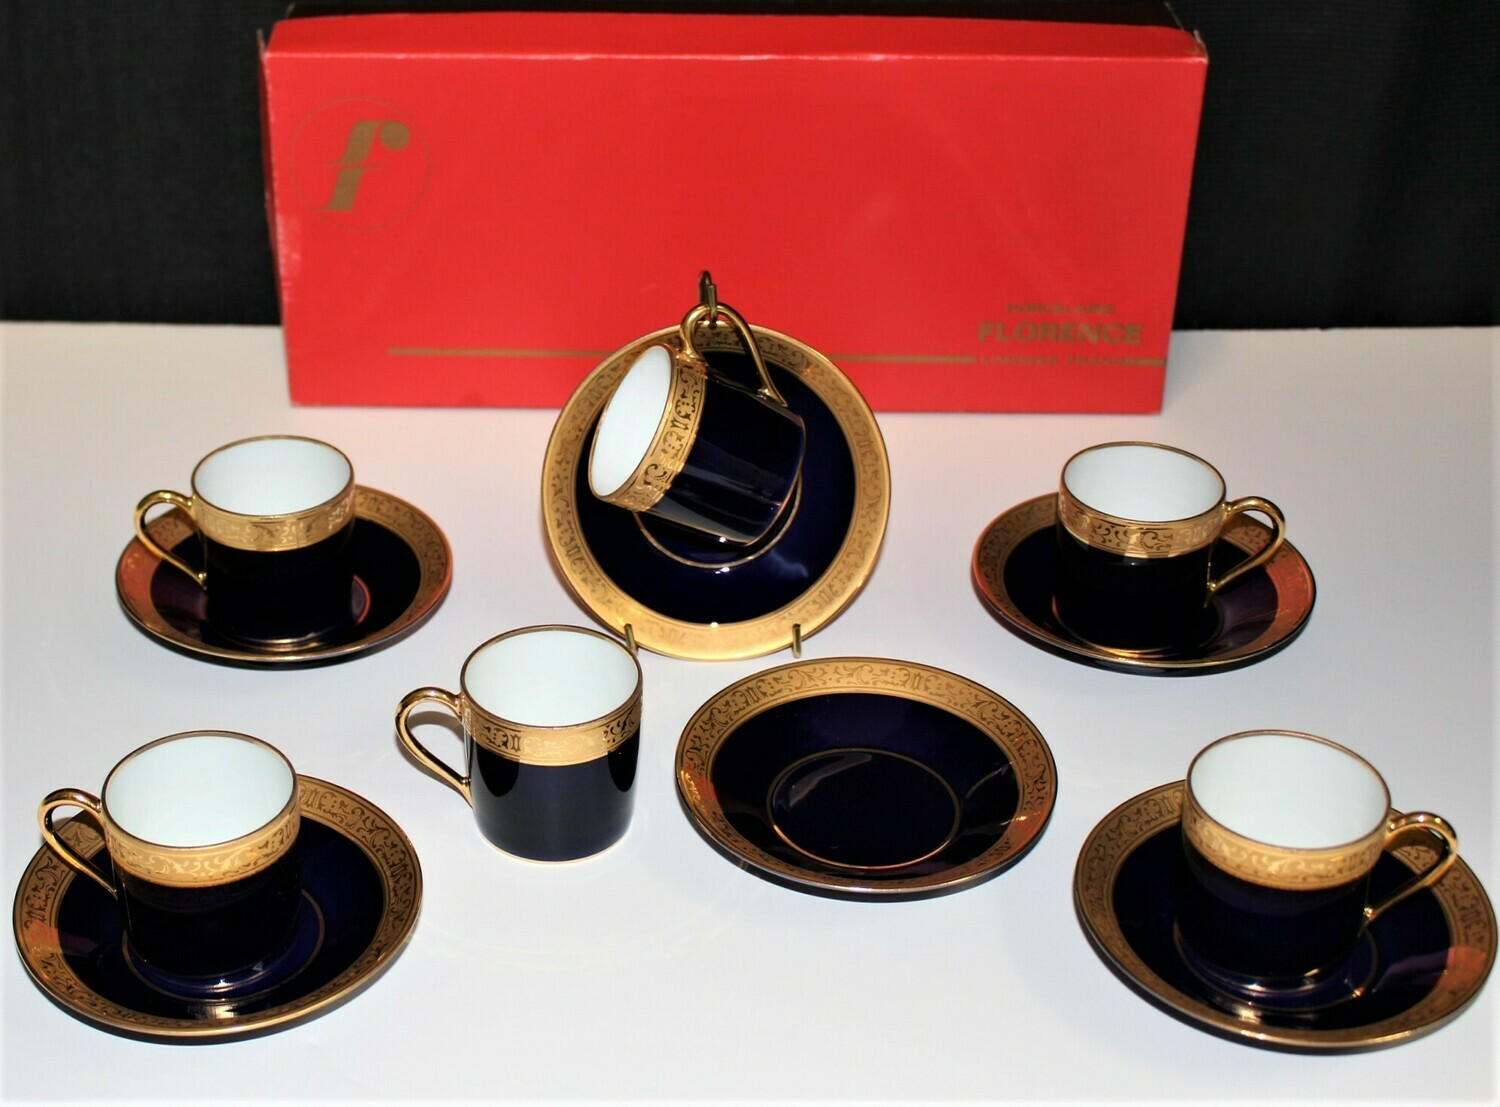 Set of 6 Limoges France Cobalt Blue/Gold Porcelain Demitasse Espresso Cups & Saucers in Original Box